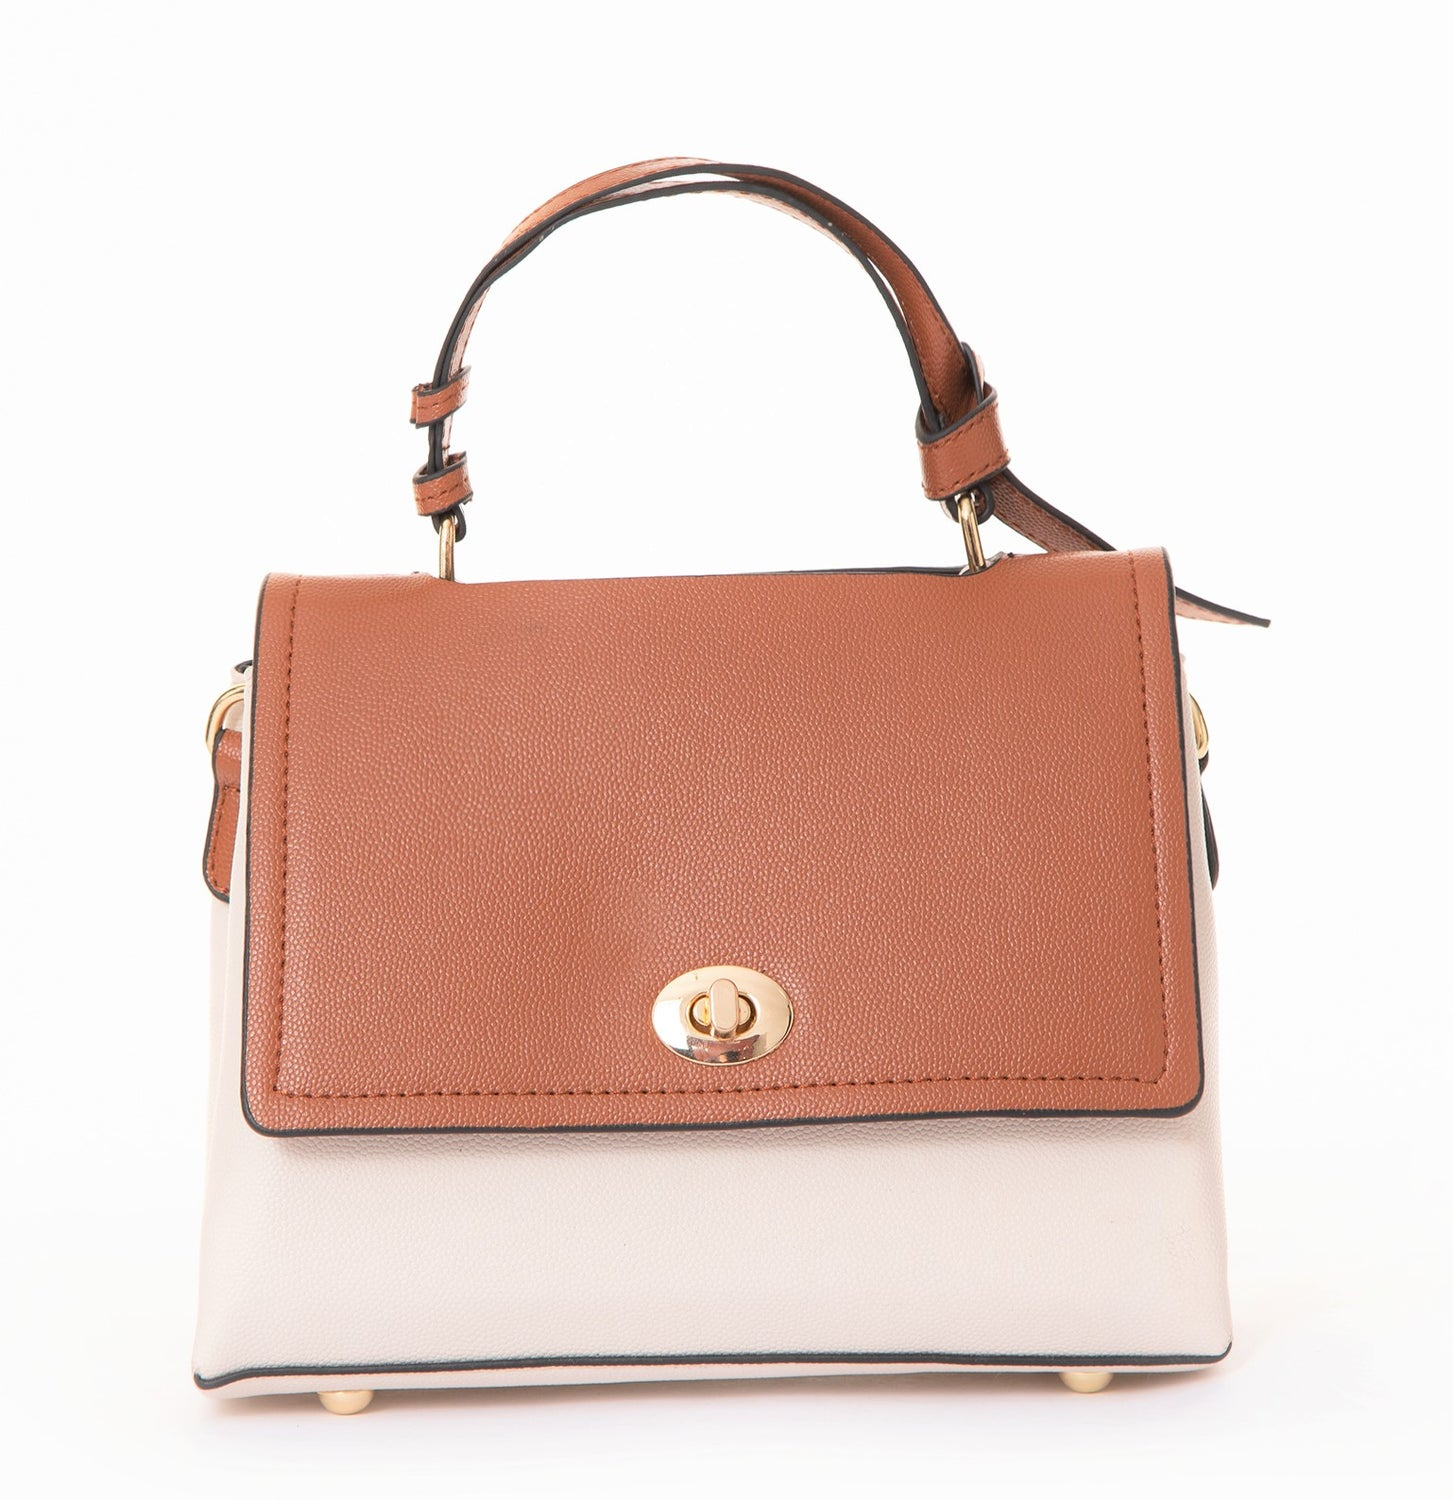 Pulse Accessories Handbag Tan